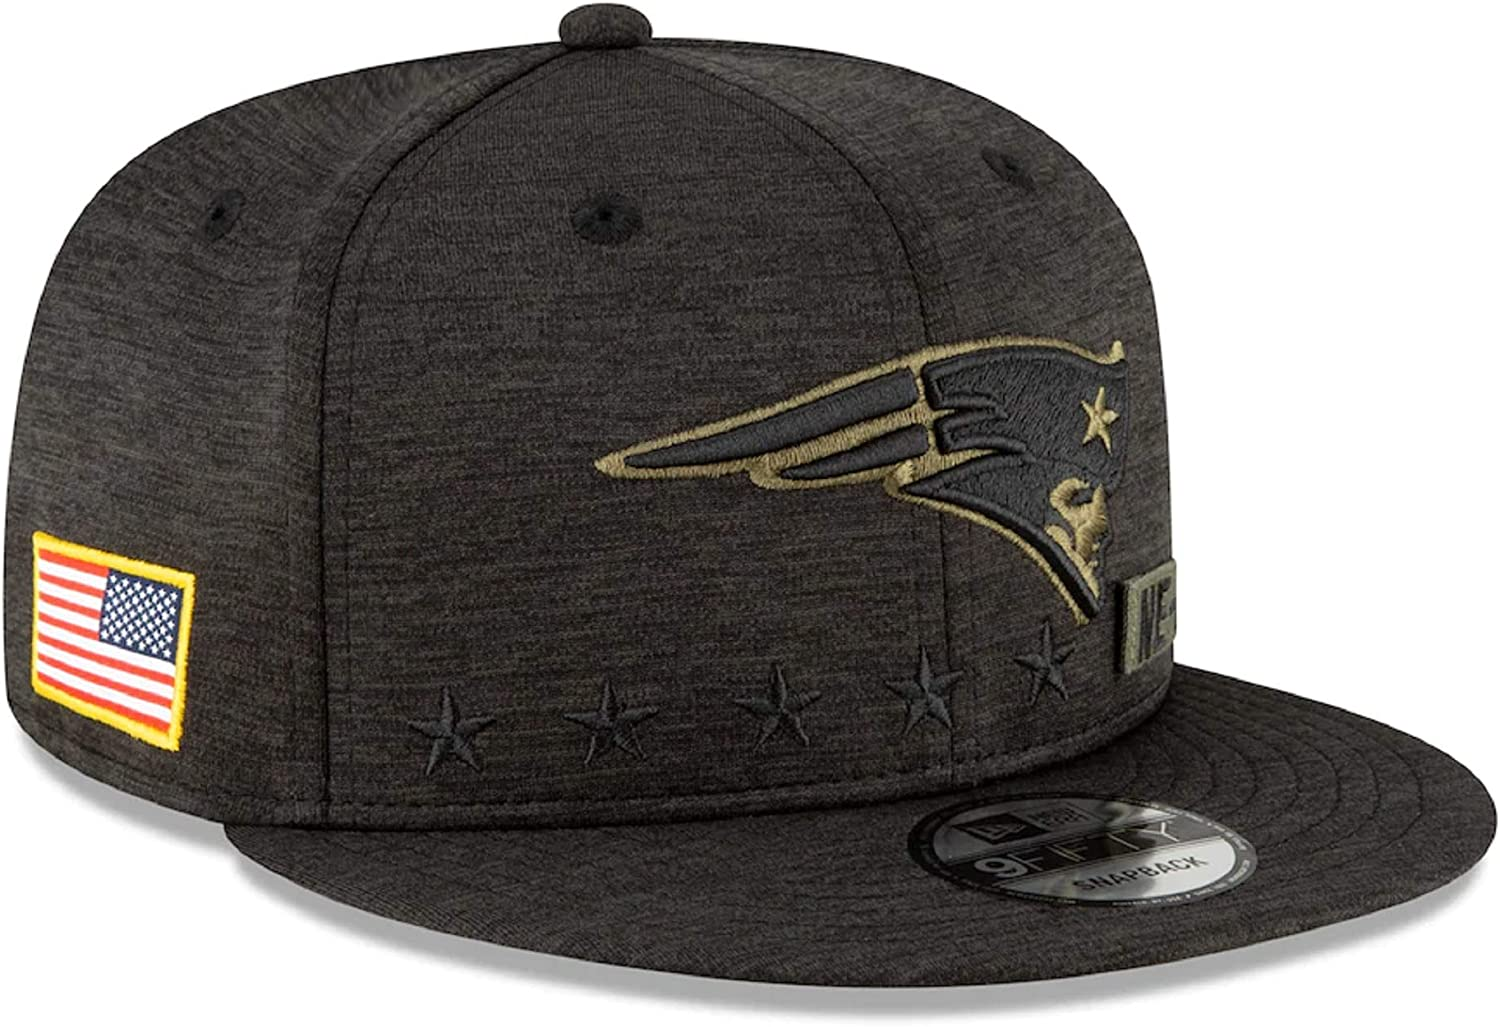 Mail order cheap New Era Exclusive Selecition Men's O Adjustable Patriots Spring new work one after another Hat Cap